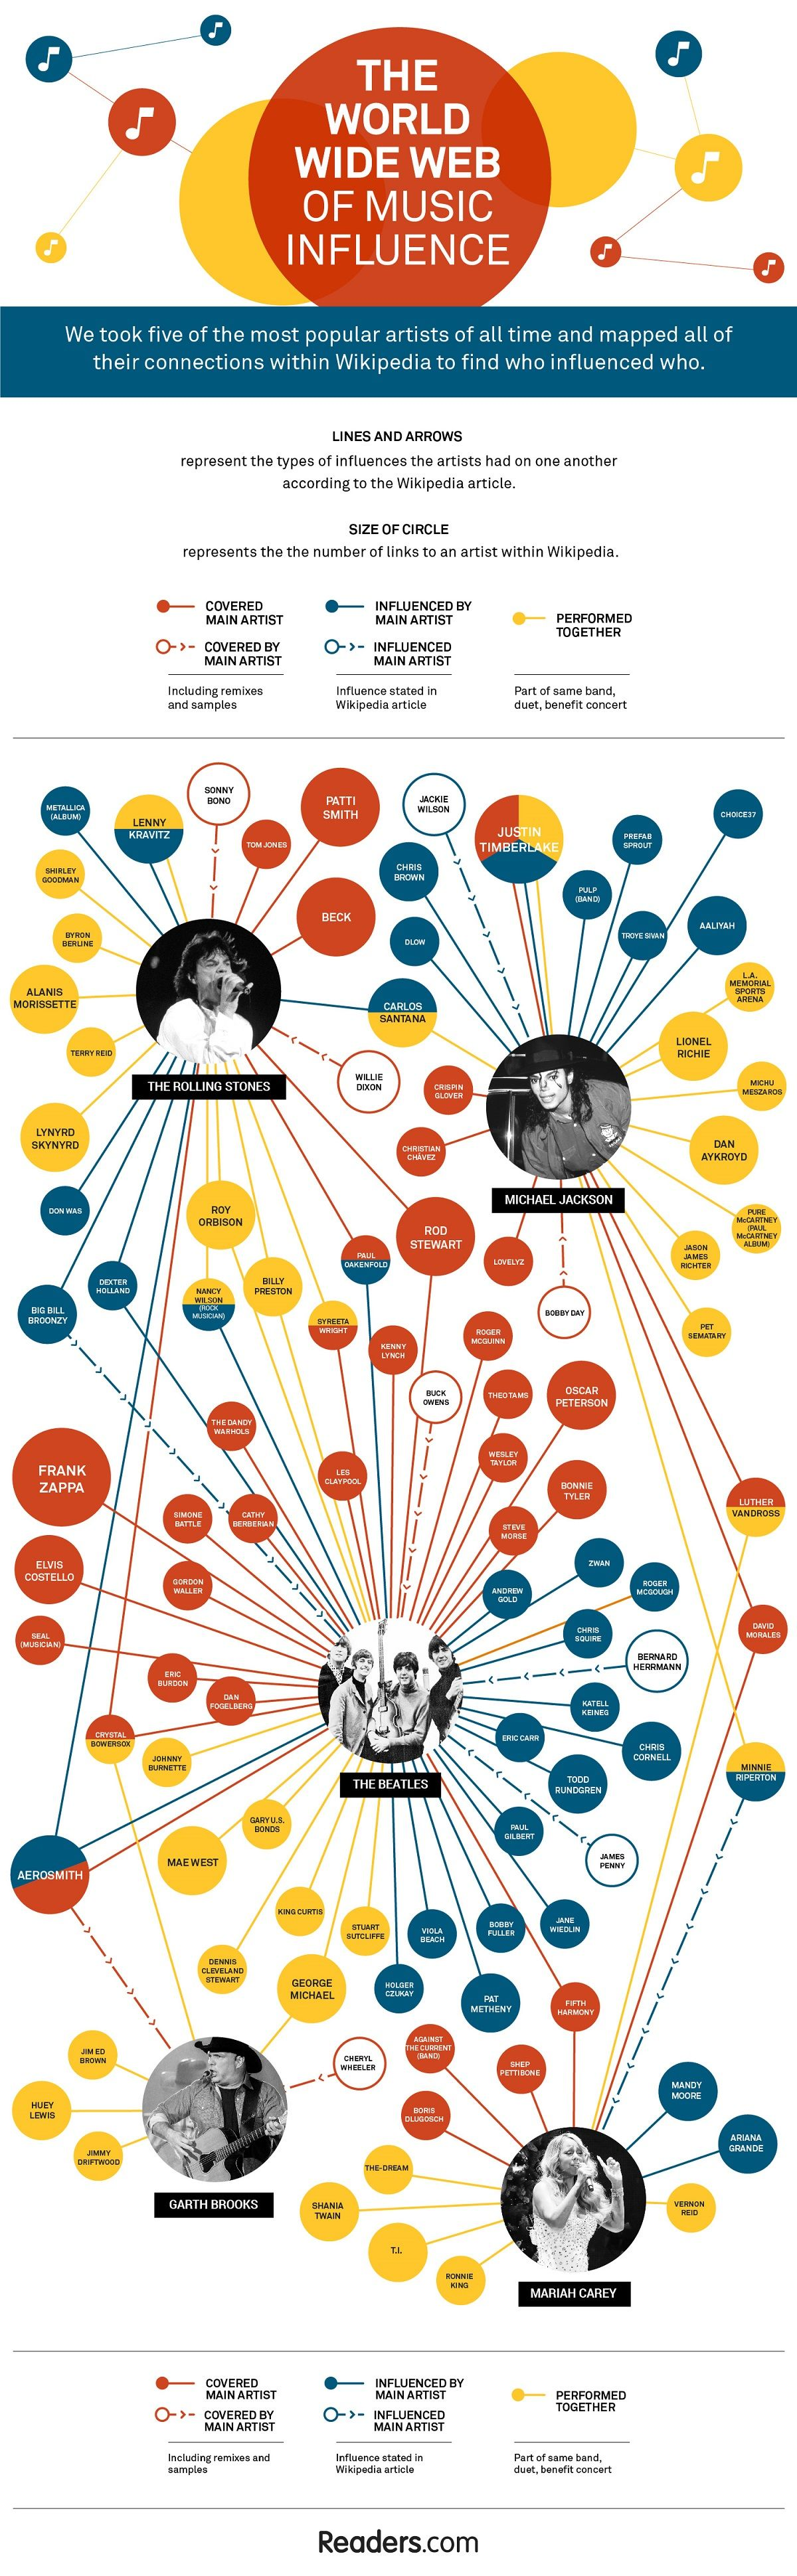 The World Wide Web of Music Influence #Infographic